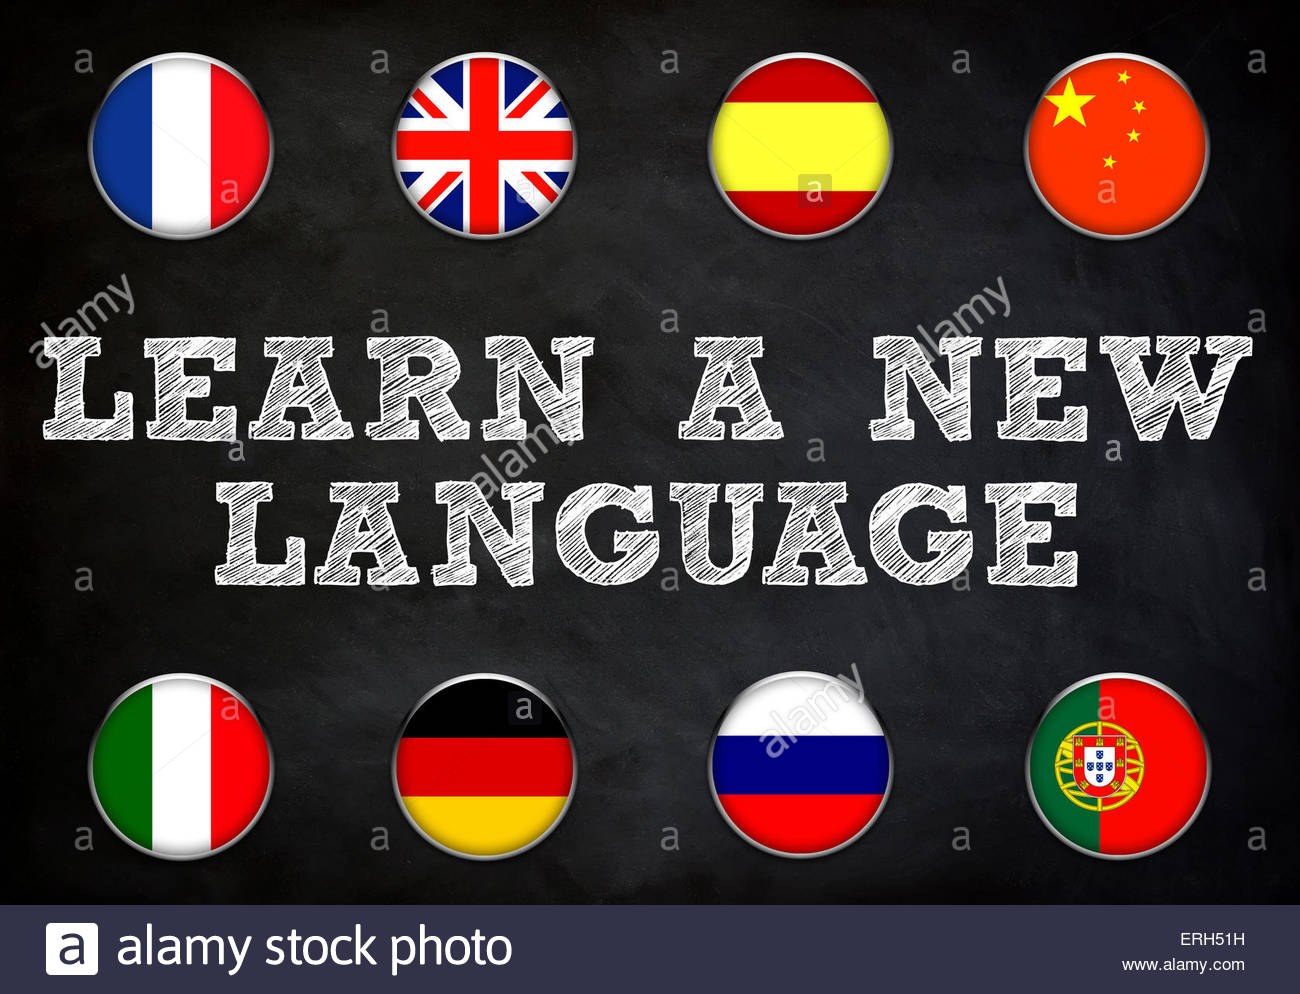 Learn a new language - blackboard illustration - Stock Image